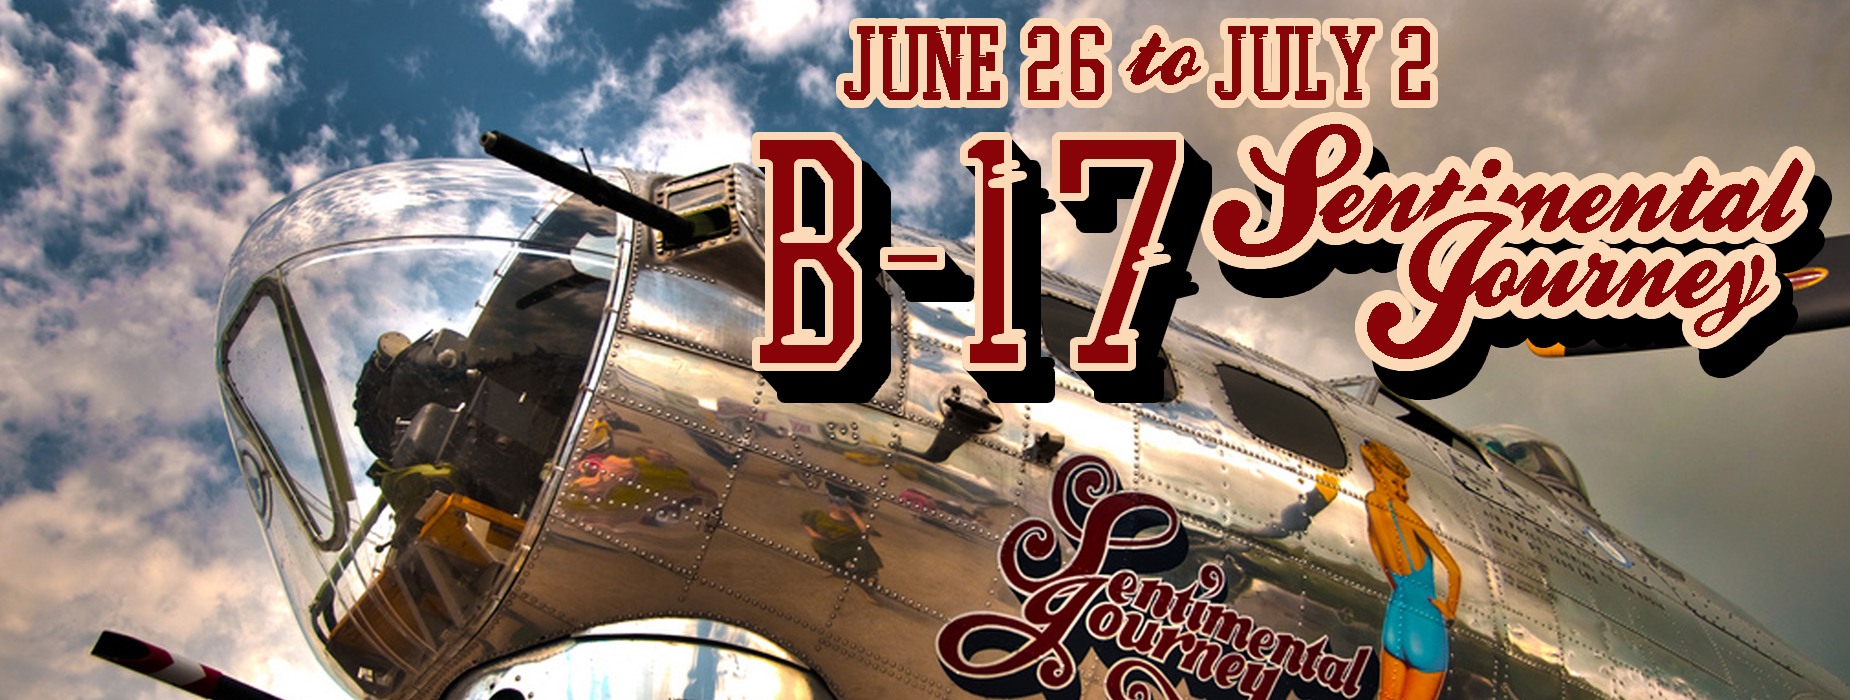 Poster for - B-17: A Sentimental Journey